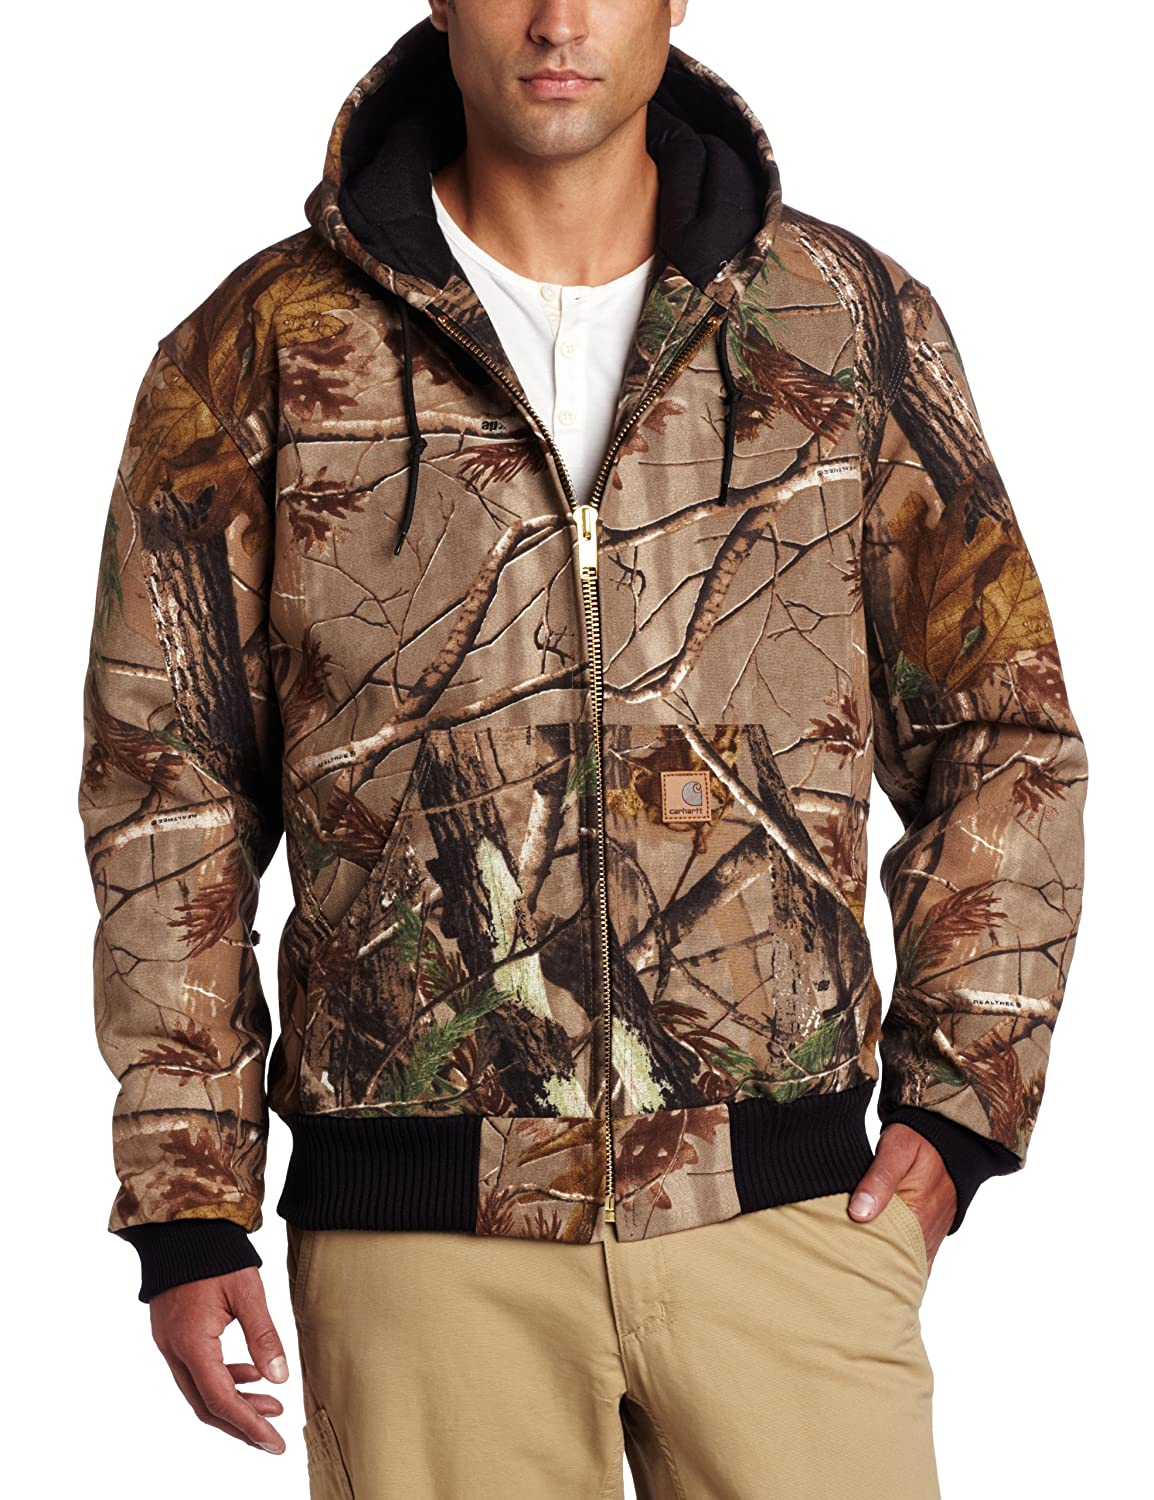 Carhartt Men's Big & Tall Quilted Flannel Lined Camo Active Jacket Carhartt Sportswear - Mens J221